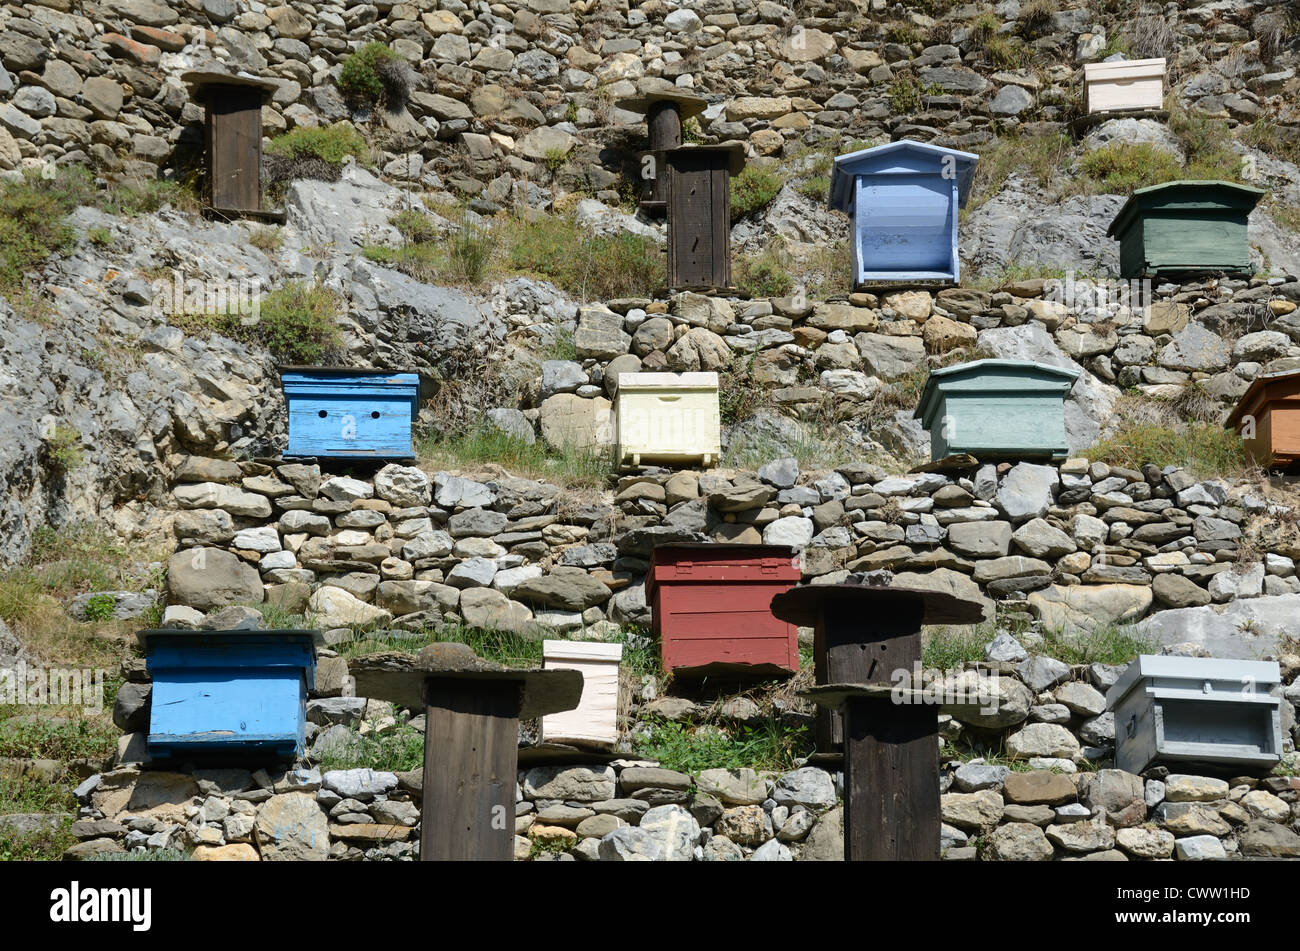 Walled Apiary with Collection of Different Bee Hives at La Brigue Roya Valley France - Stock Image